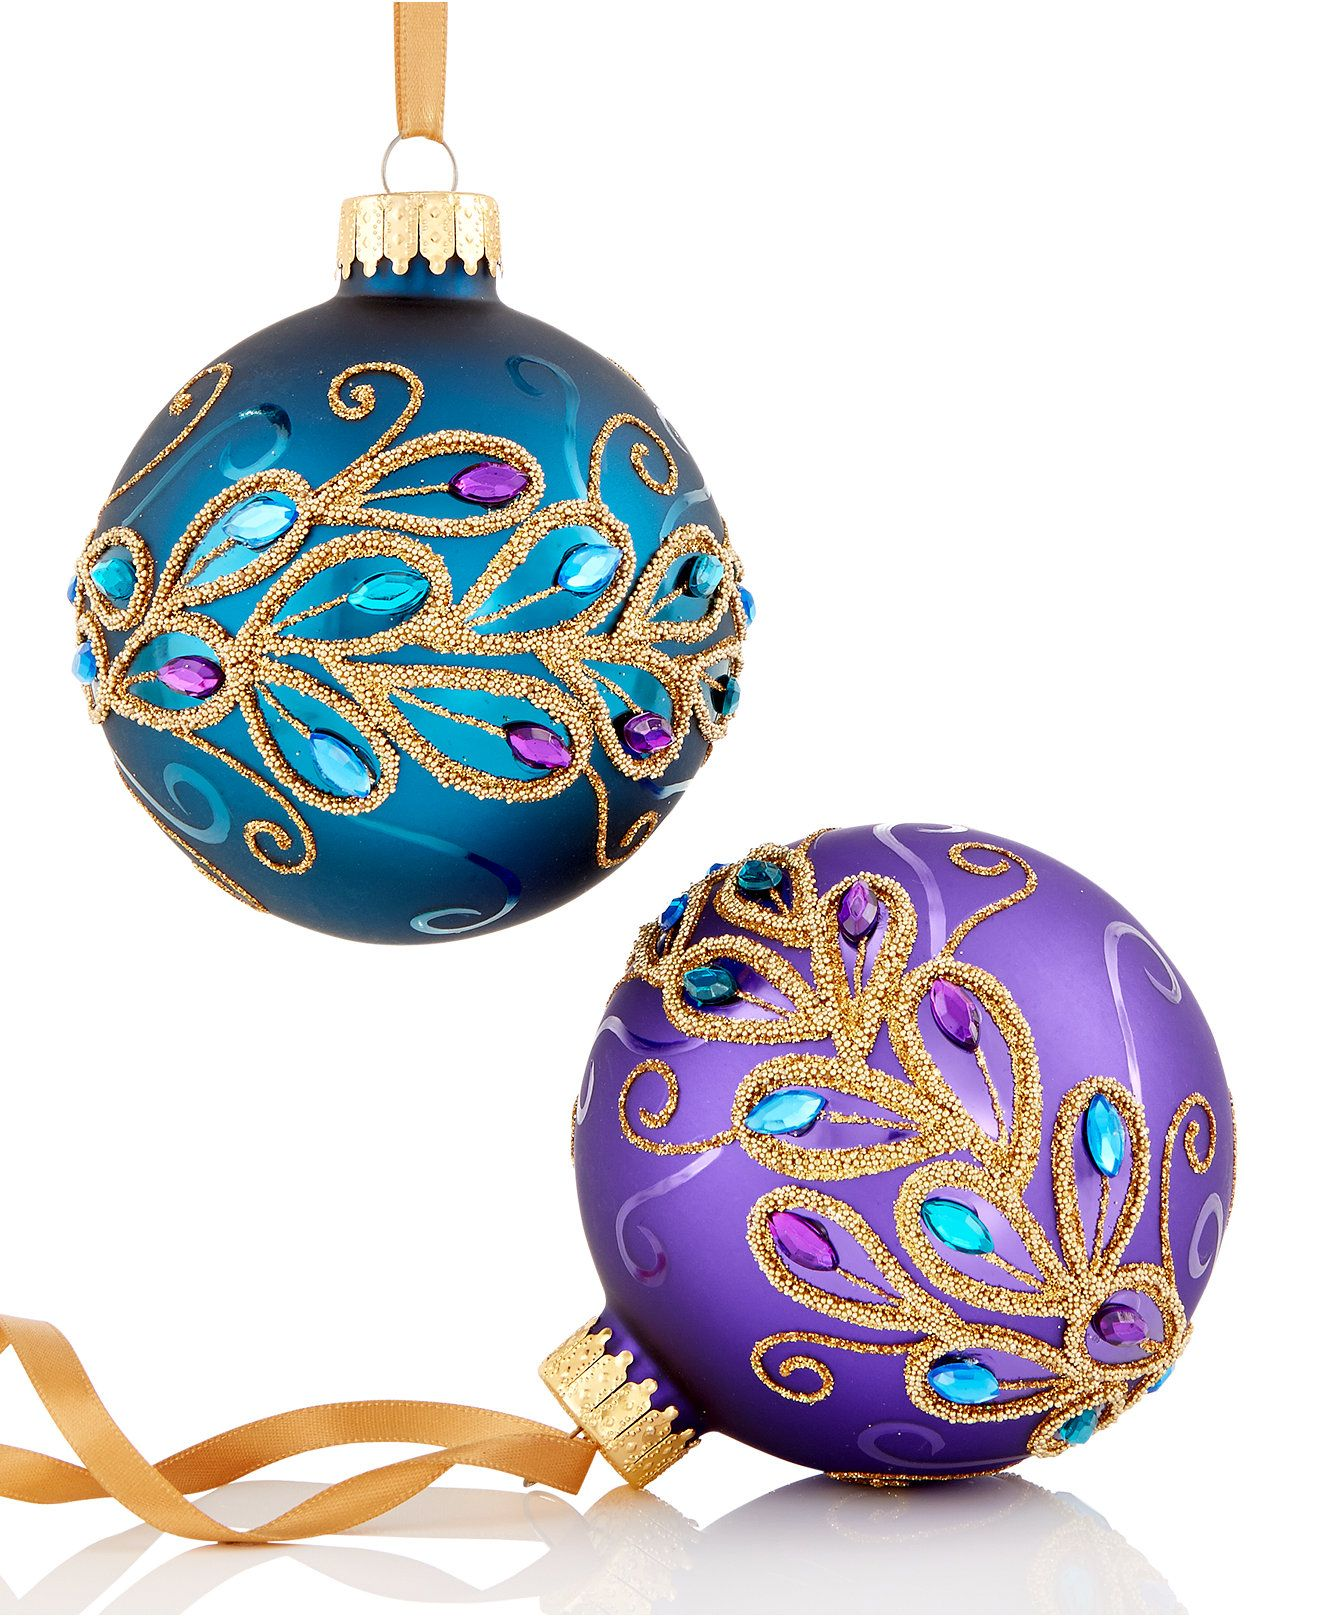 Decorative Christmas Ball Ornaments: Holiday Lane Peacock Glass Ball Ornaments, Set Of 2